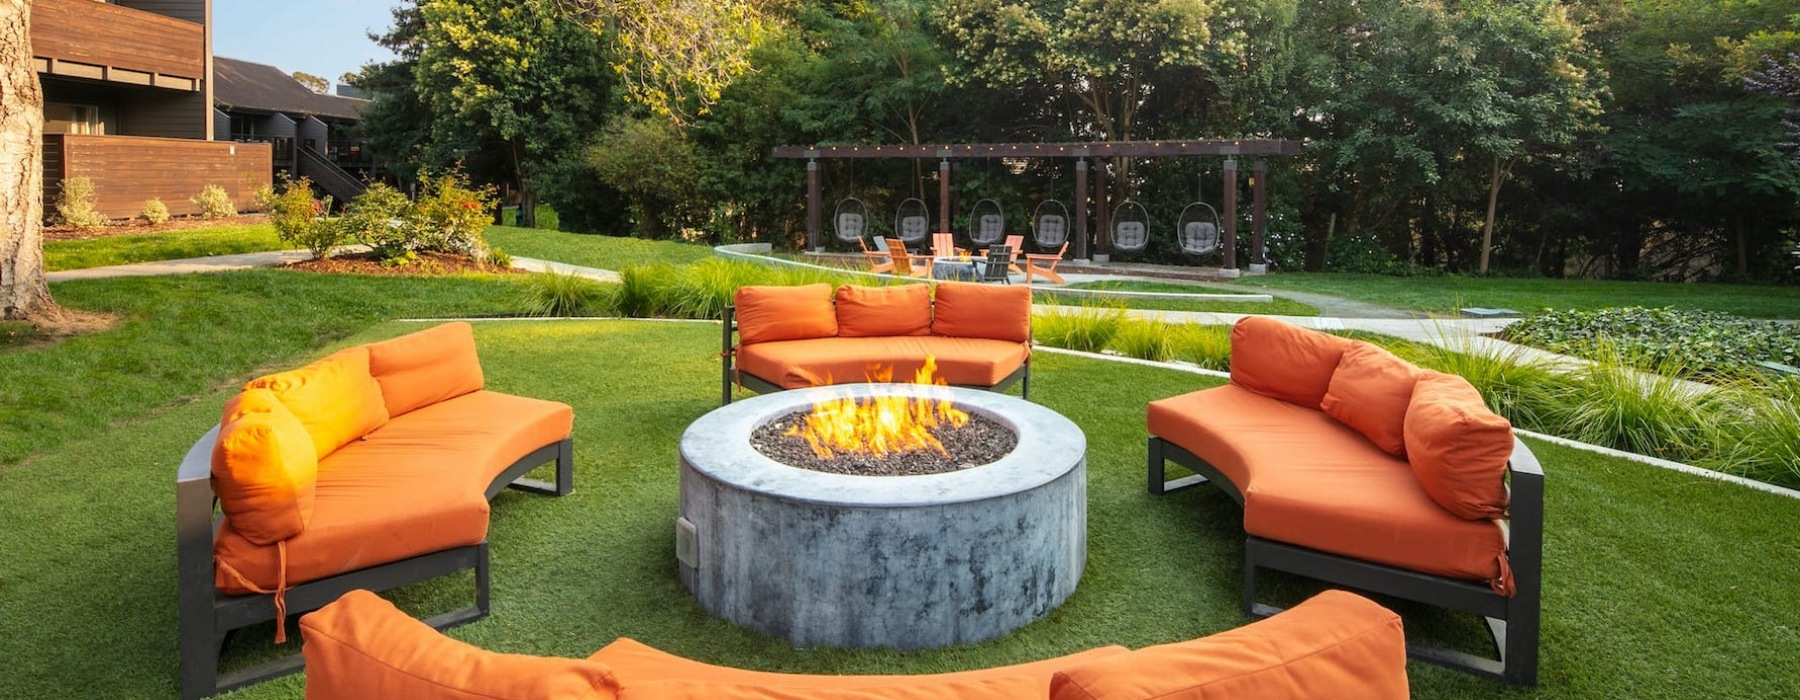 spacious seating around a firepit in a large outdoor lounge area